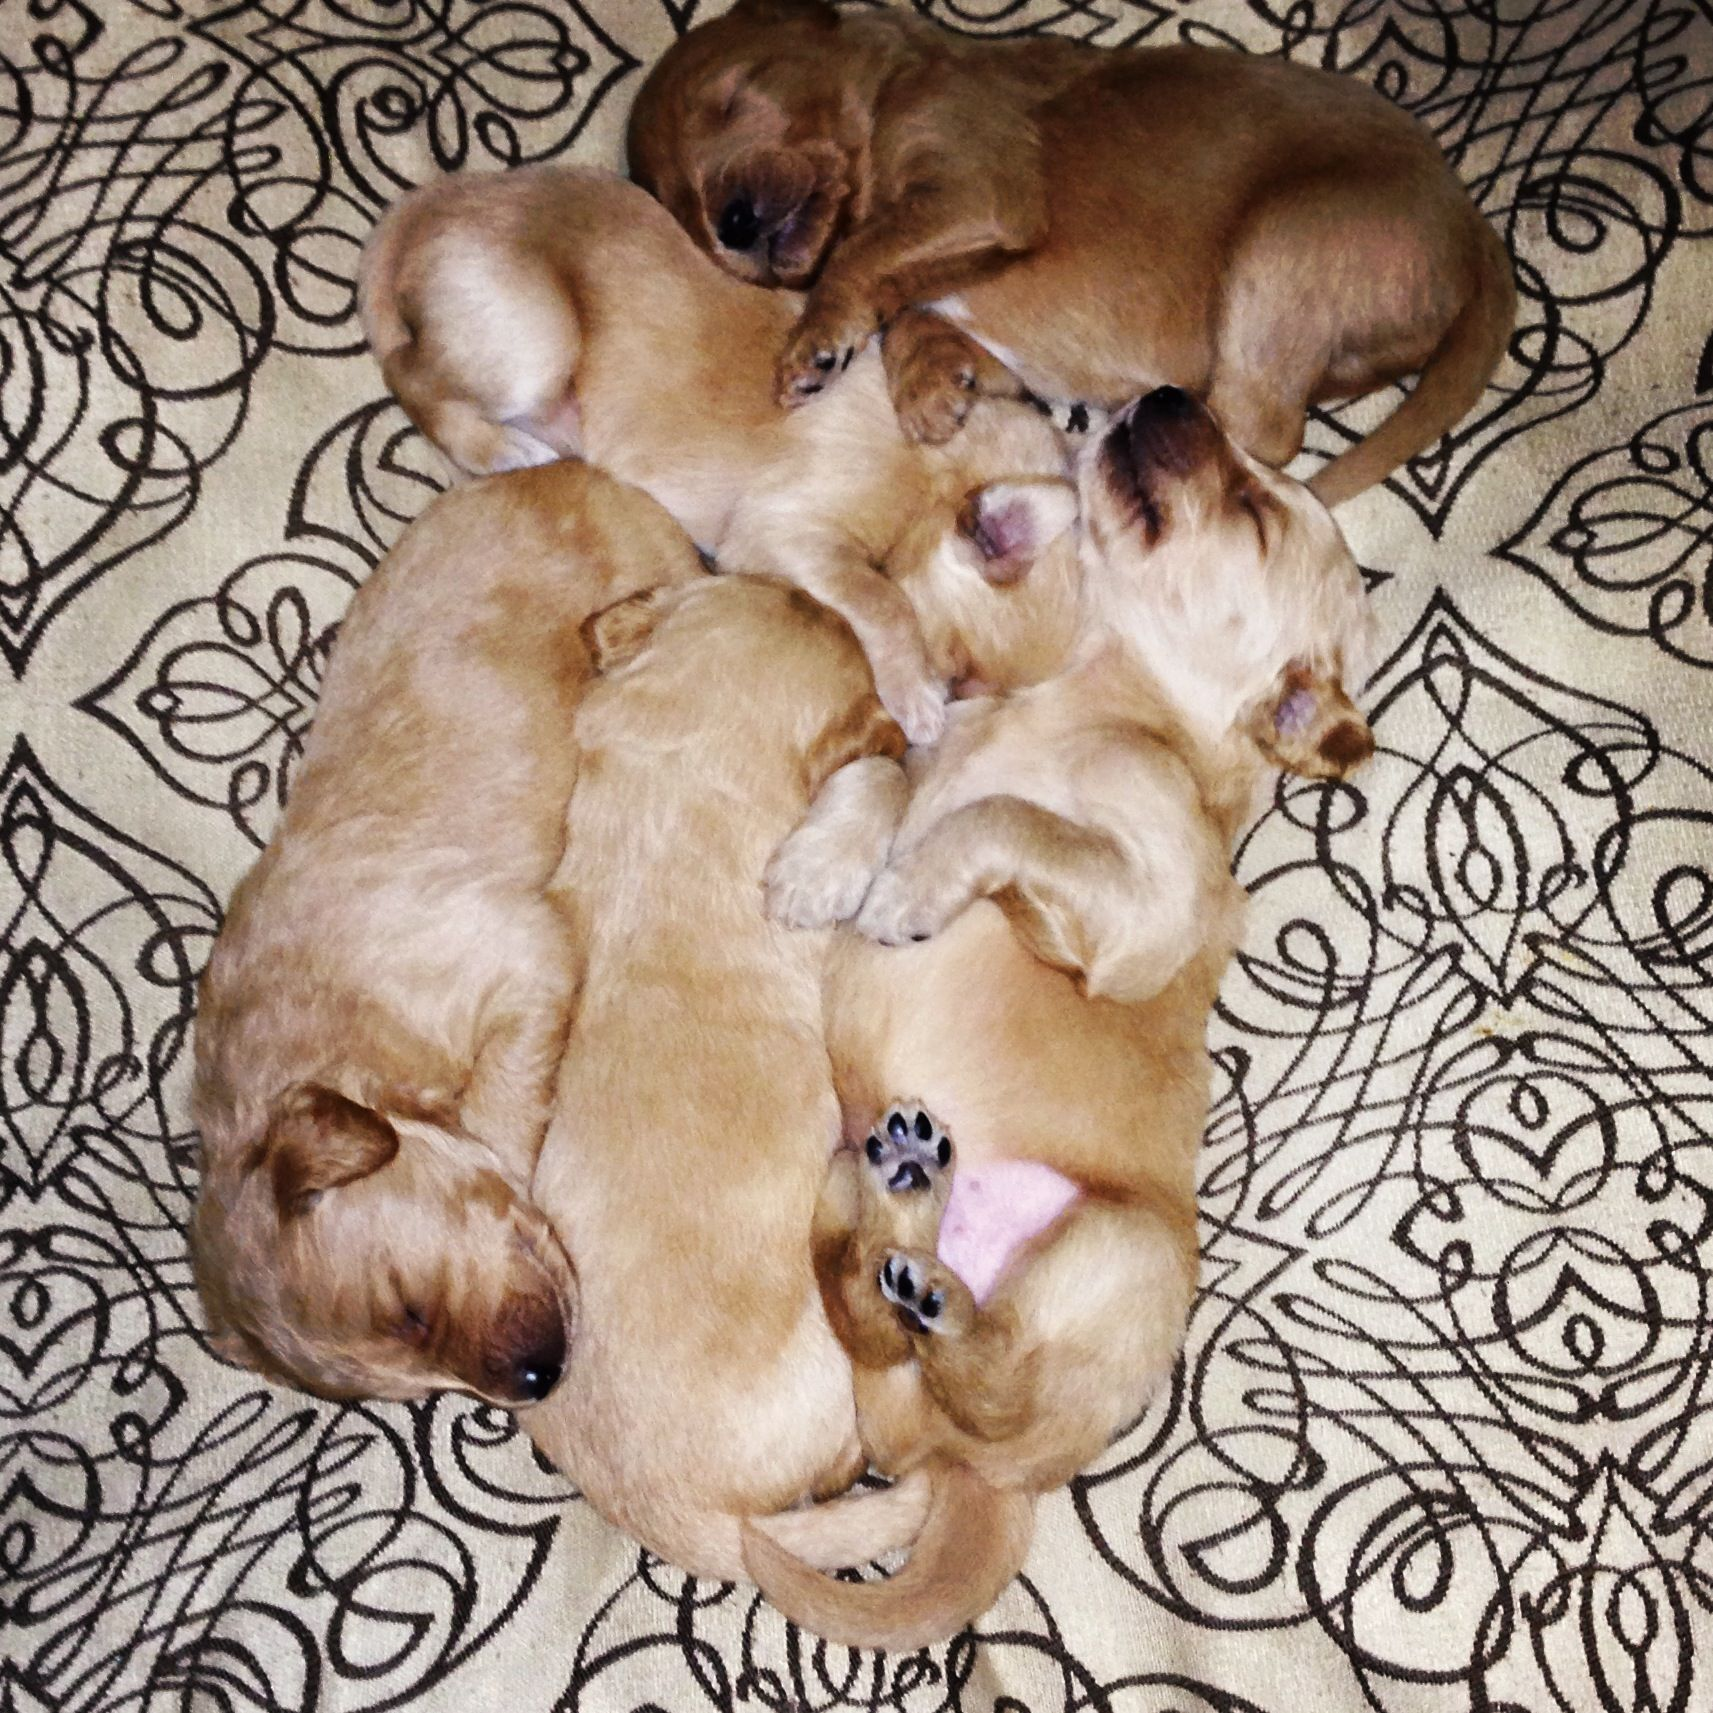 Goldendoodle Puppies 1 200 In Modesto Ca Email Jam15j Sbcglobal Net Or Comment Animals Dogs